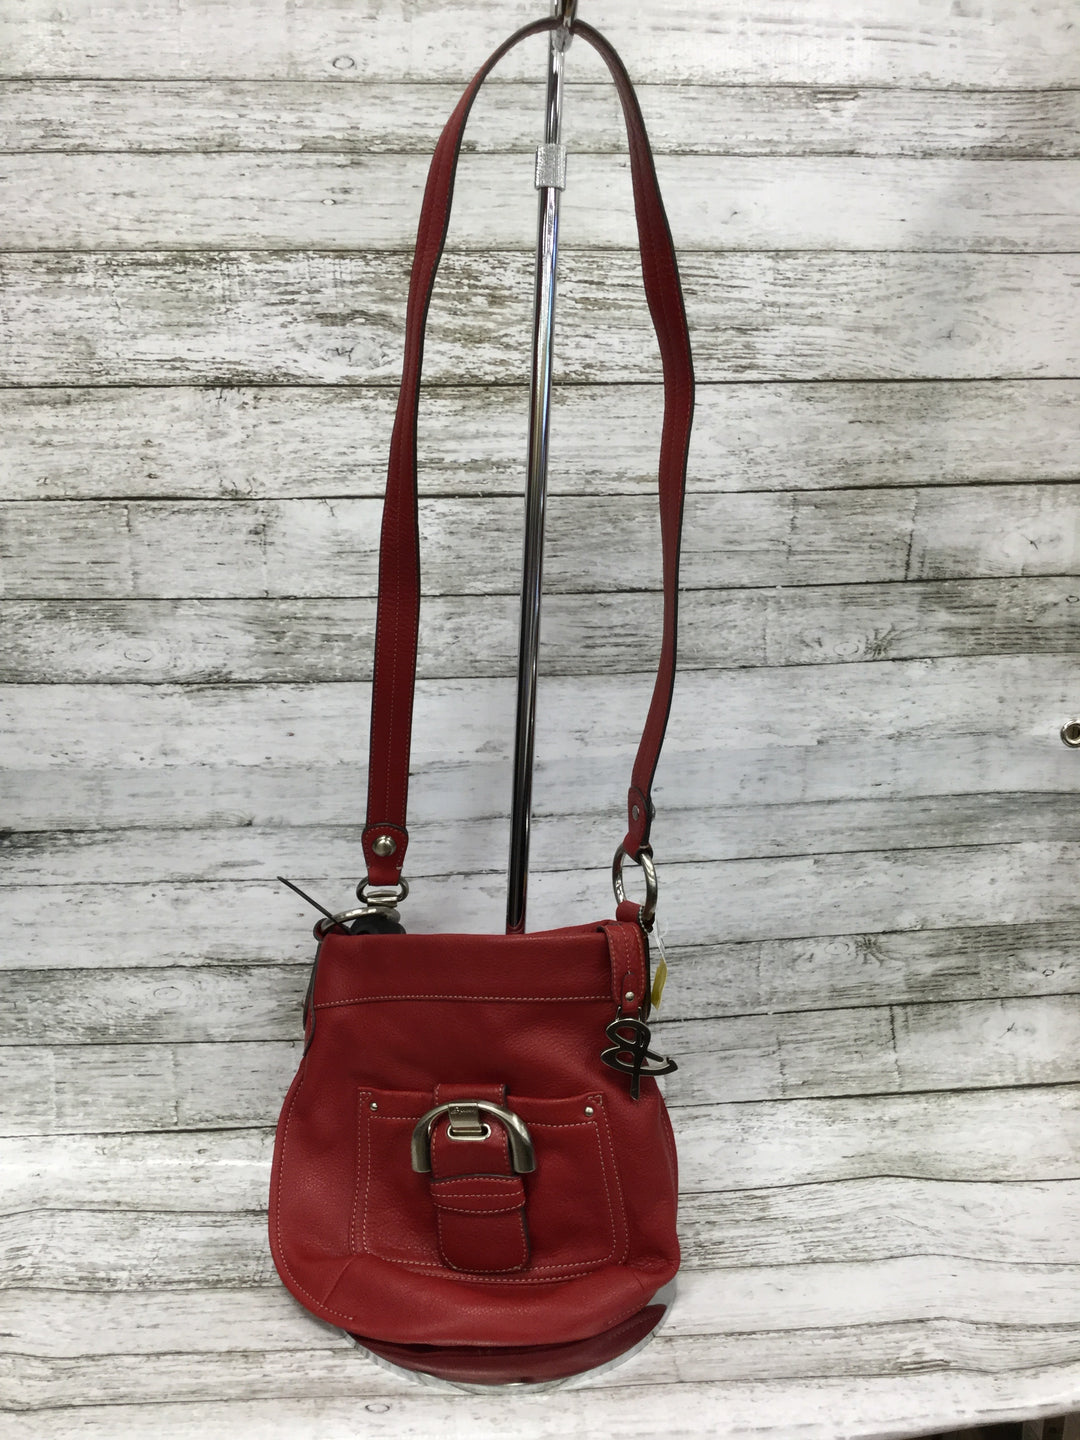 Primary Photo - BRAND: B MAKOWSKY <BR>STYLE: HANDBAG DESIGNER <BR>COLOR: RED <BR>SIZE: MEDIUM <BR>SKU: 127-4954-4380